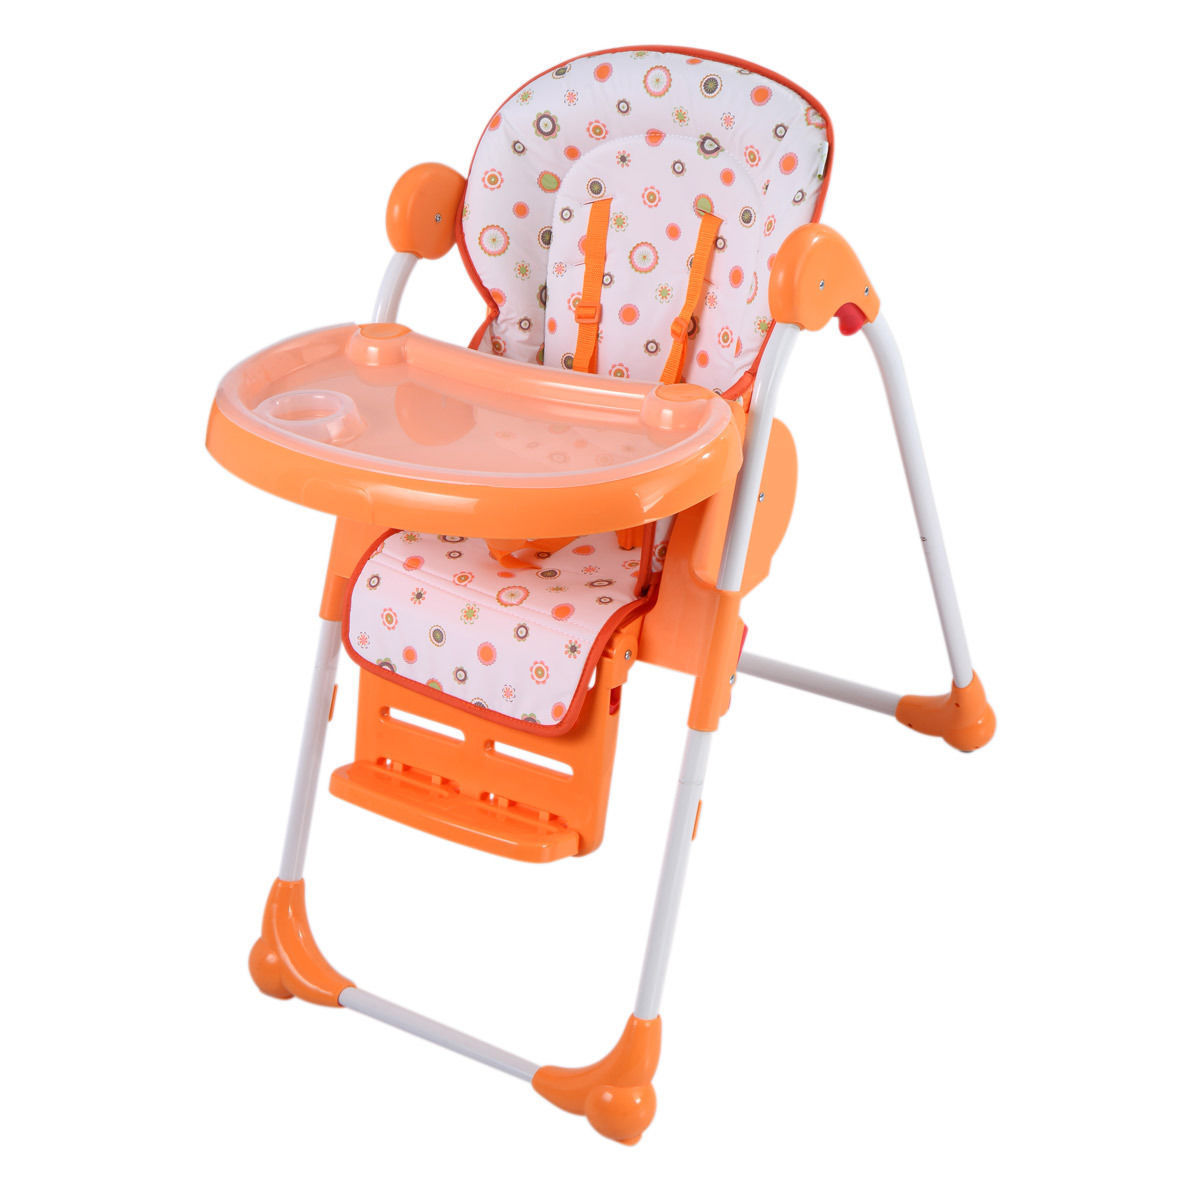 GHP 33-Lbs Capacity Orange Portable Folding Feeding Booster Seat Toddler High Chair